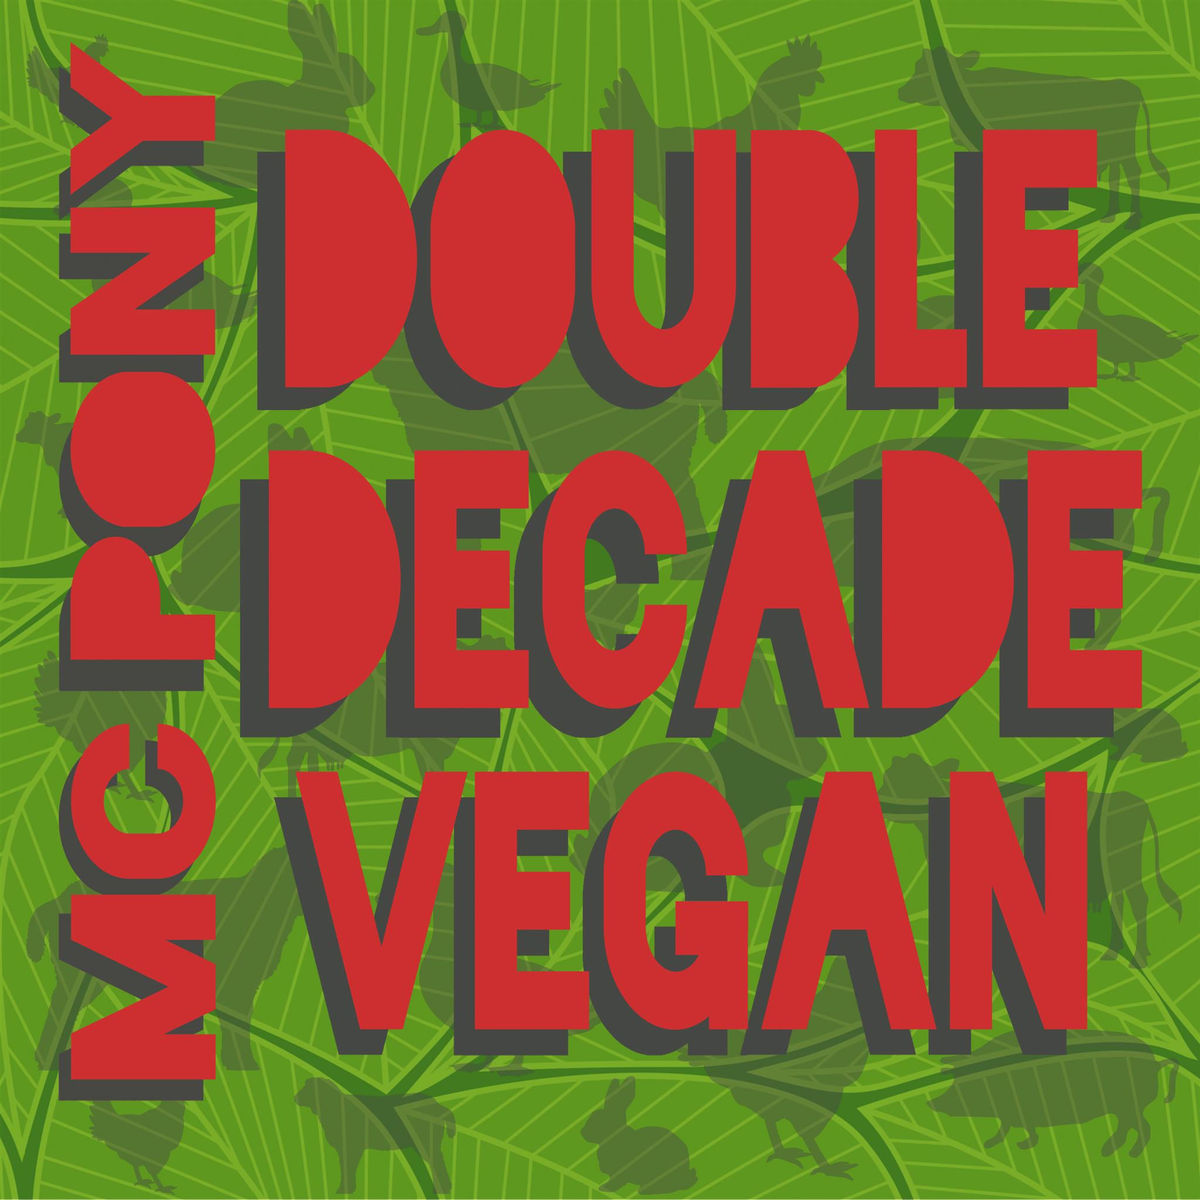 Double_Decade_Vegan_coverartlowres